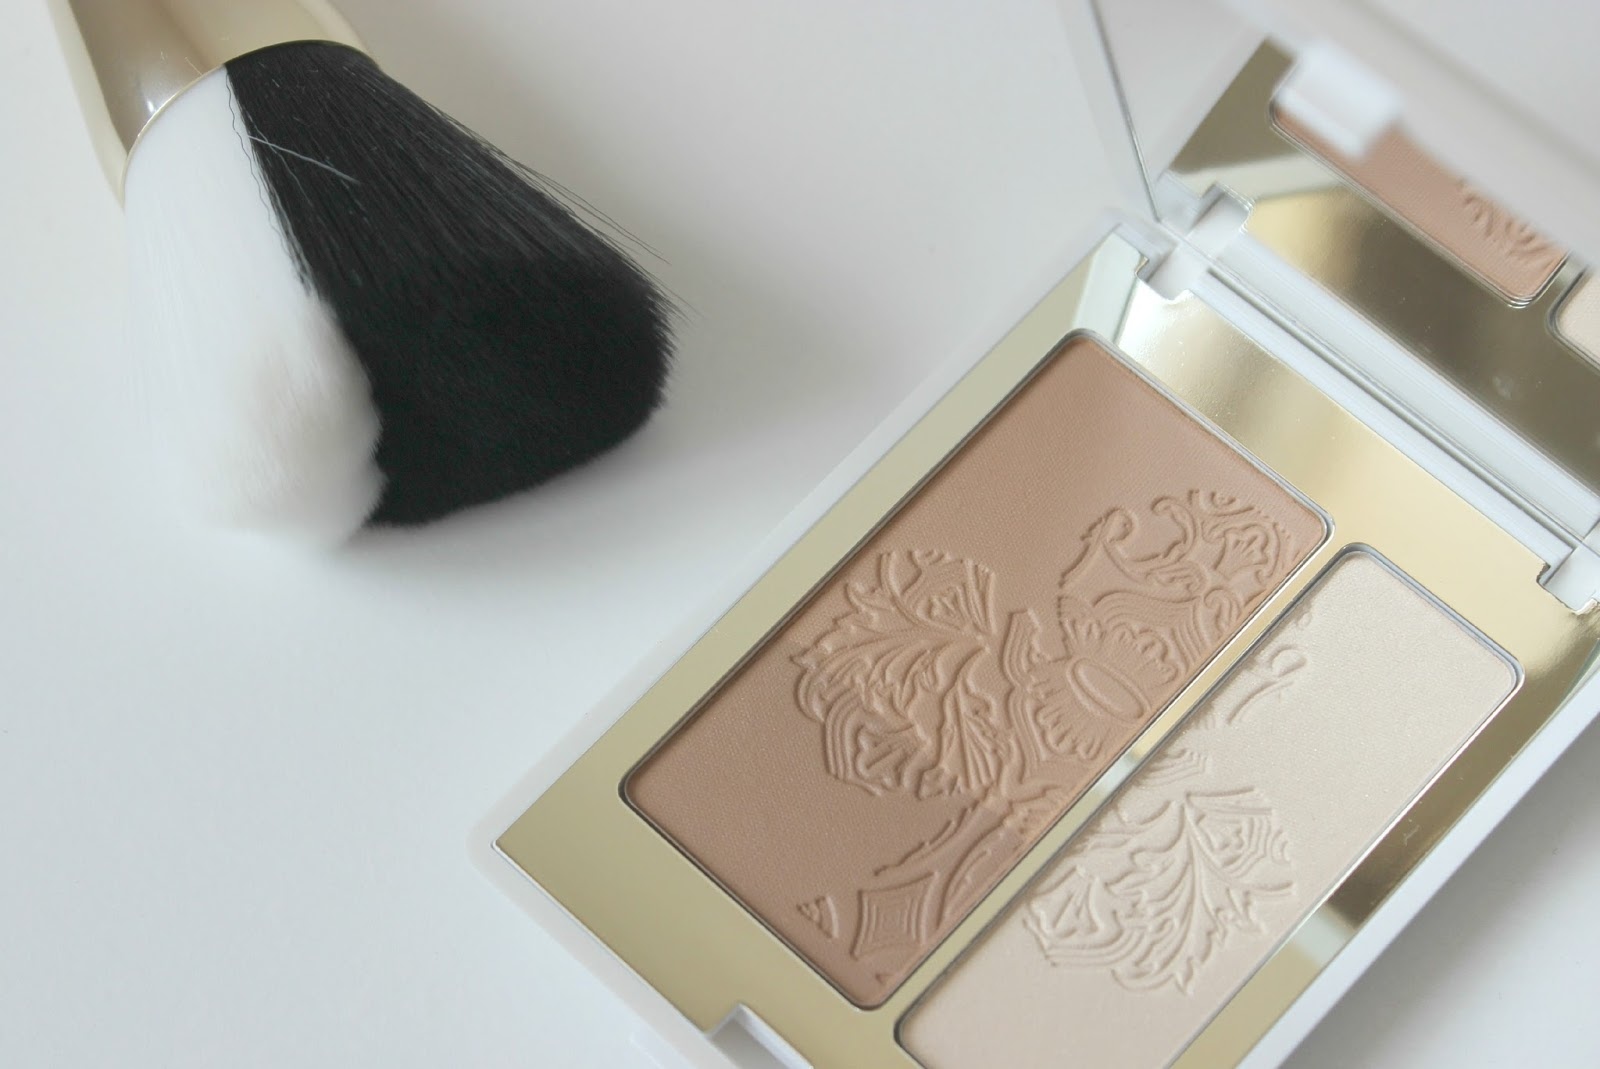 A picture of the KIKO Radiant Honey Golden Game Sculpting Powder